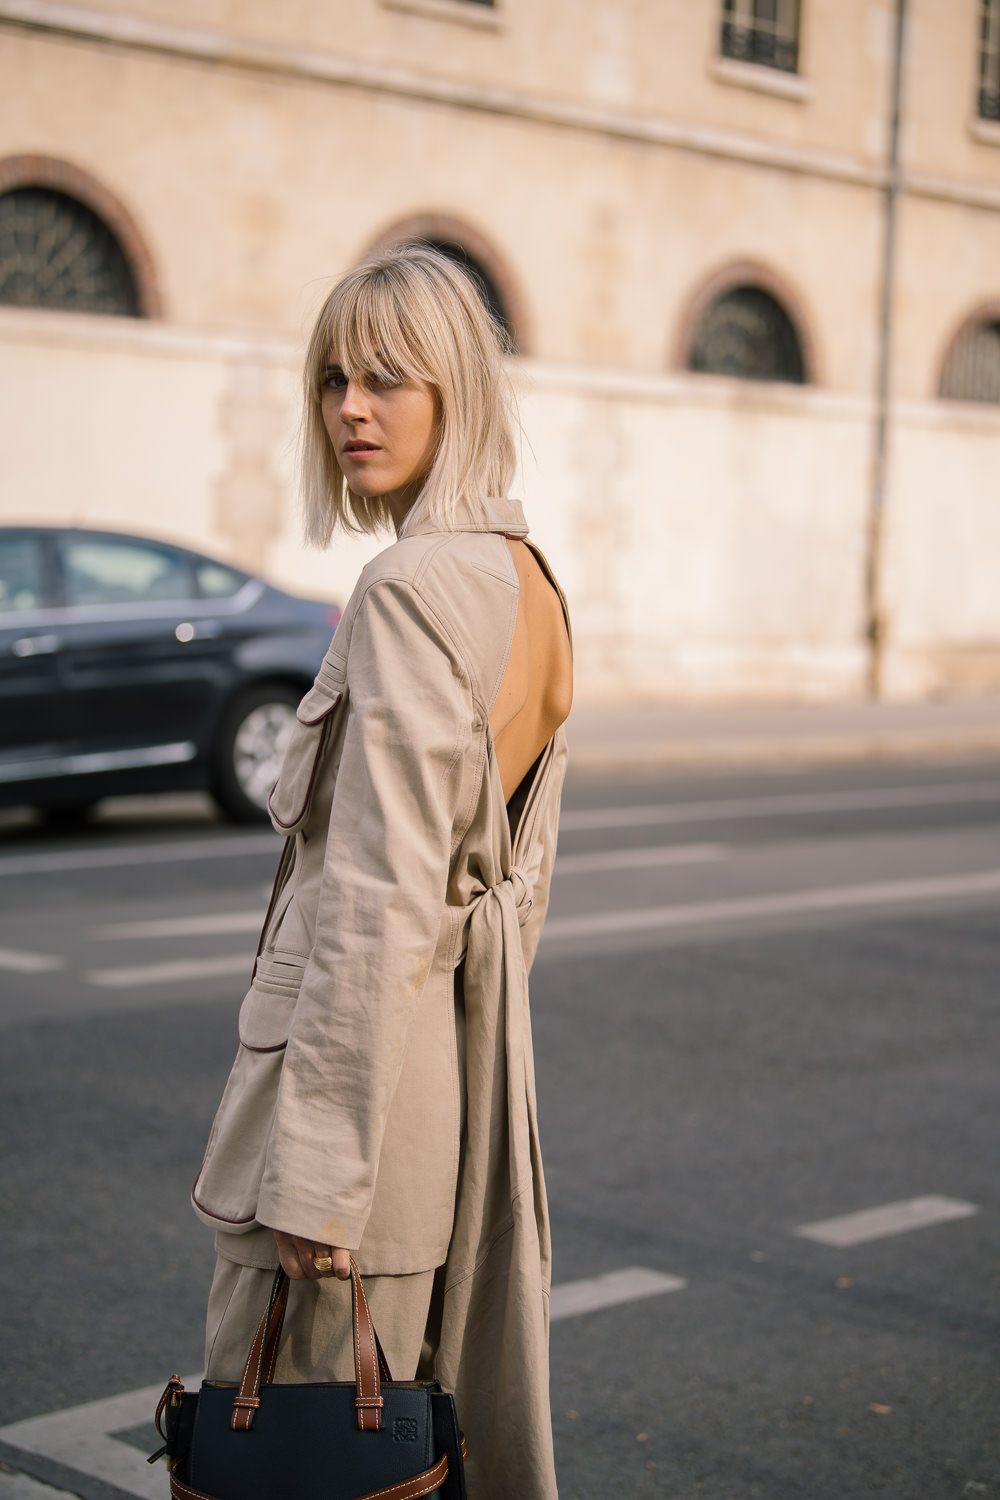 Fashion On Street: Paris Fashion Week 2018 Loewe Street Style With The